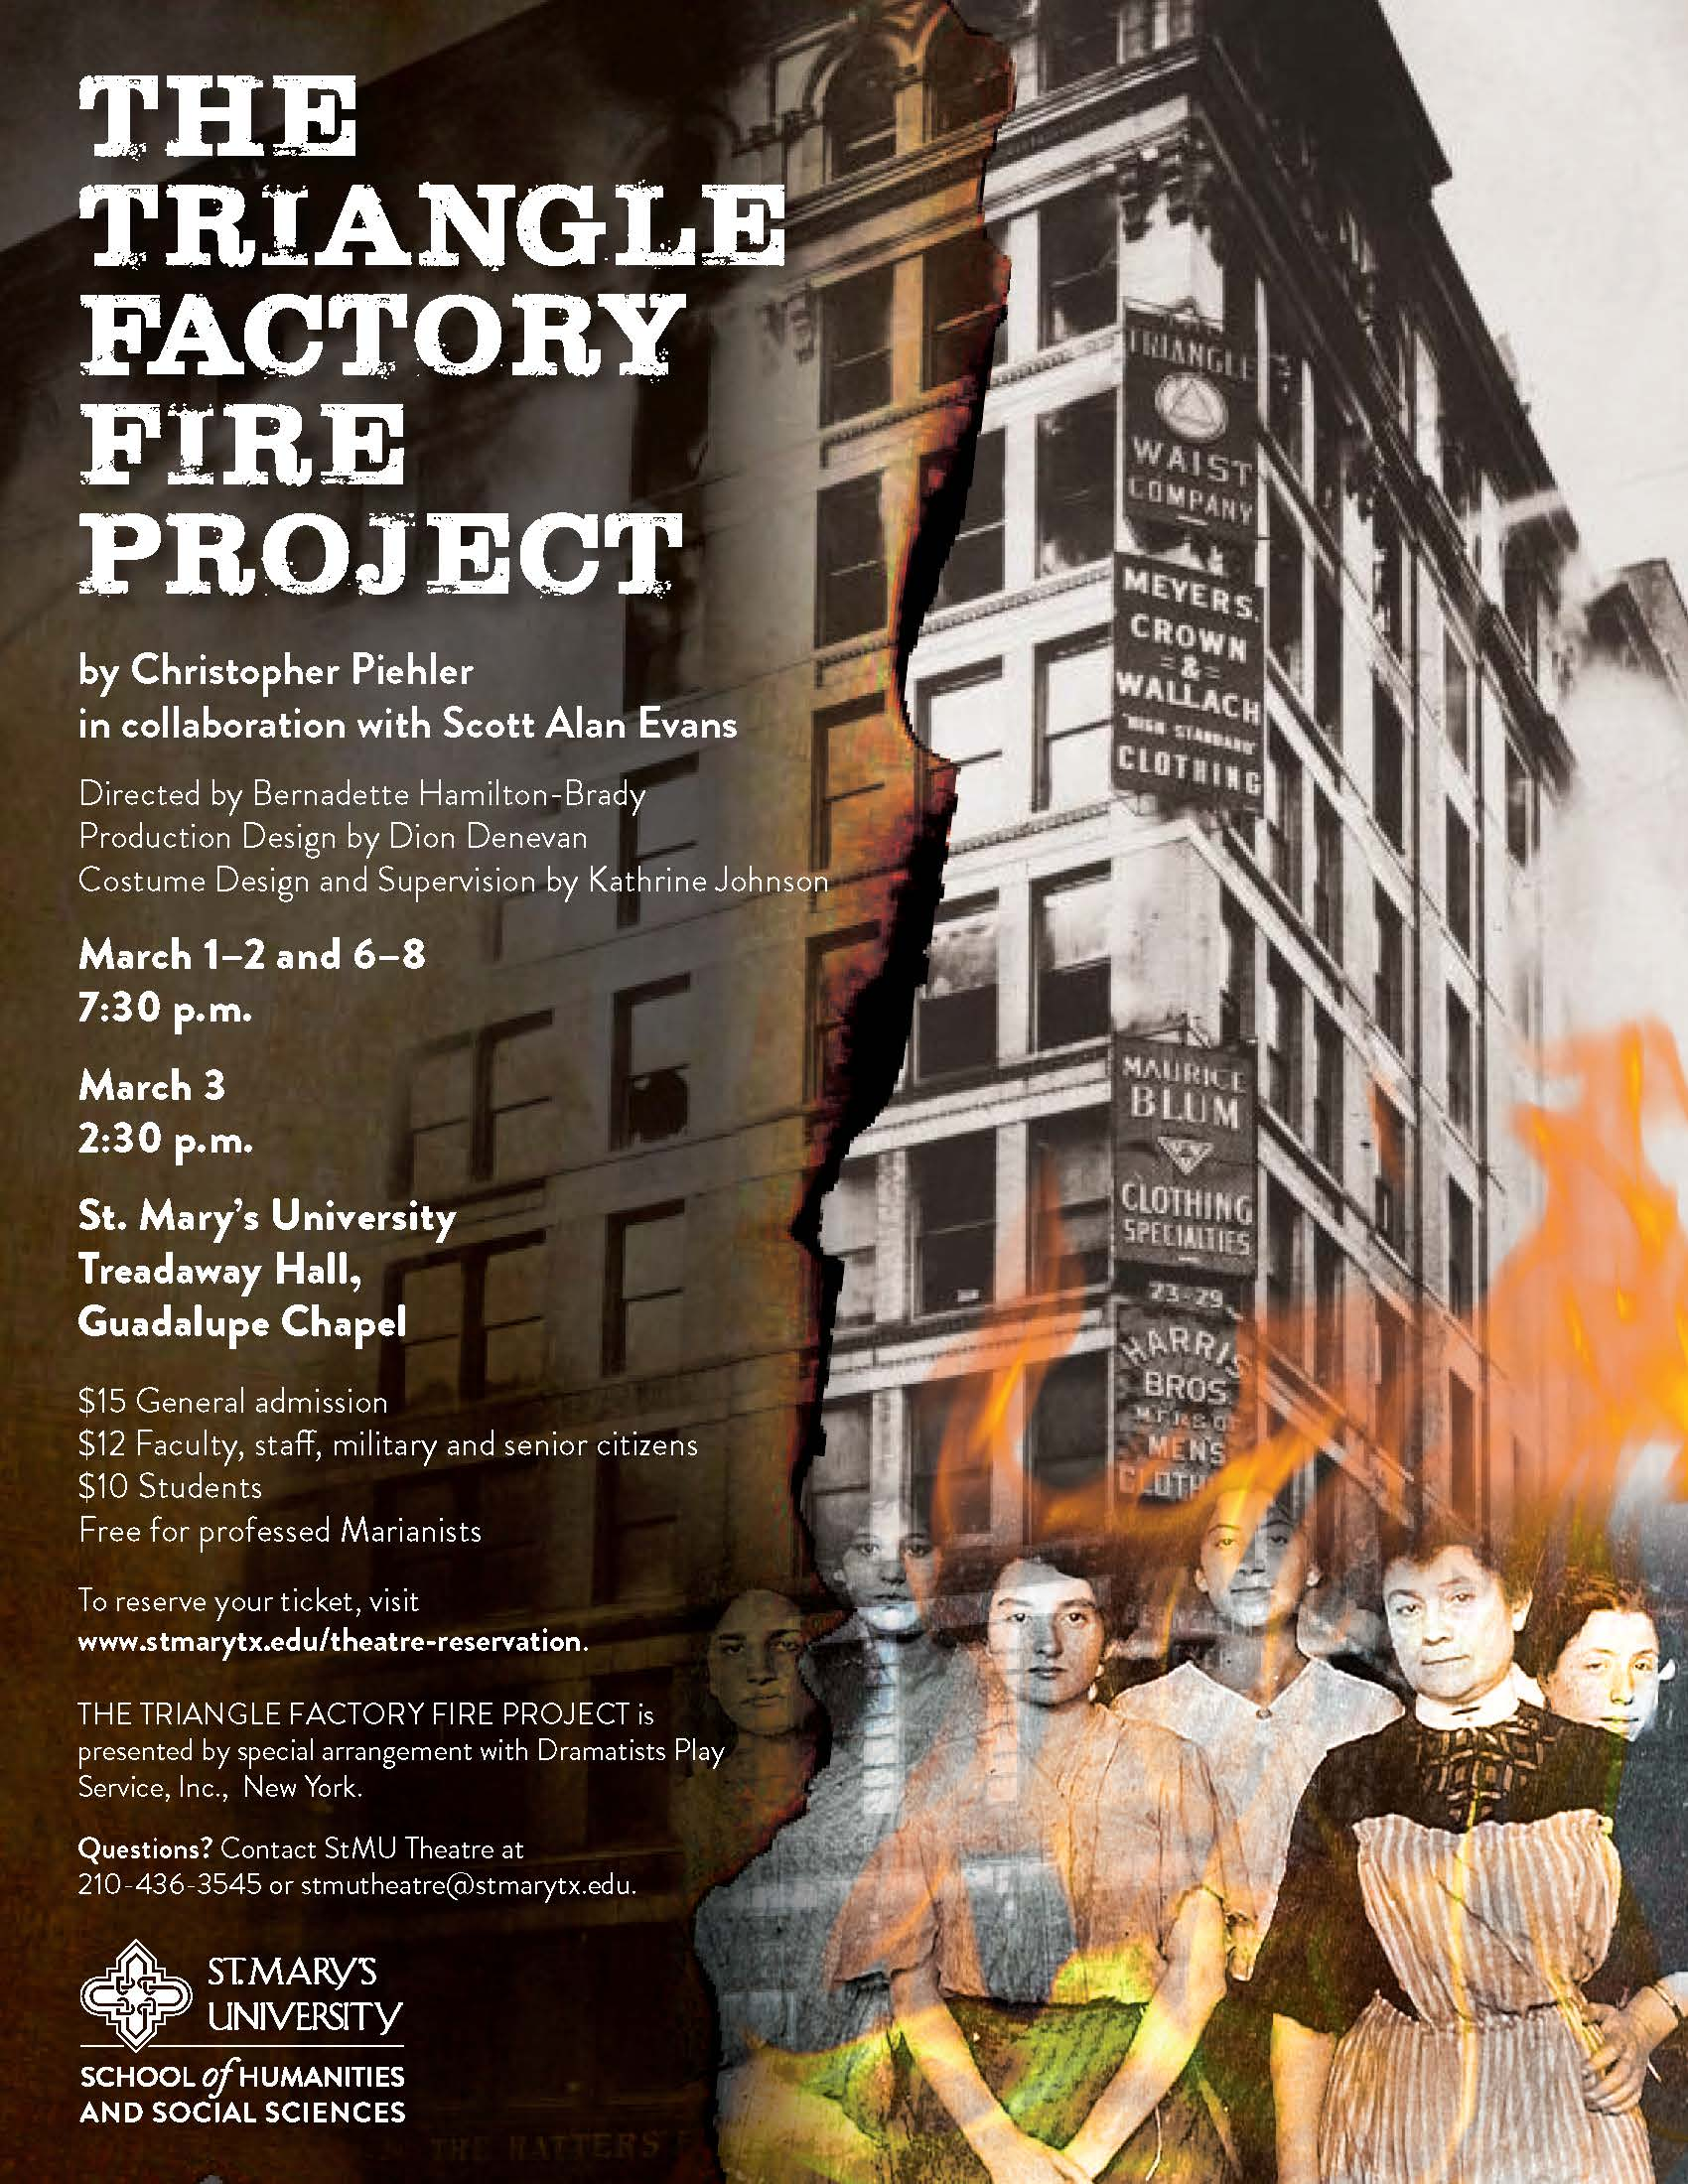 The Triangle Factory Fire Project by Christopher Piehler